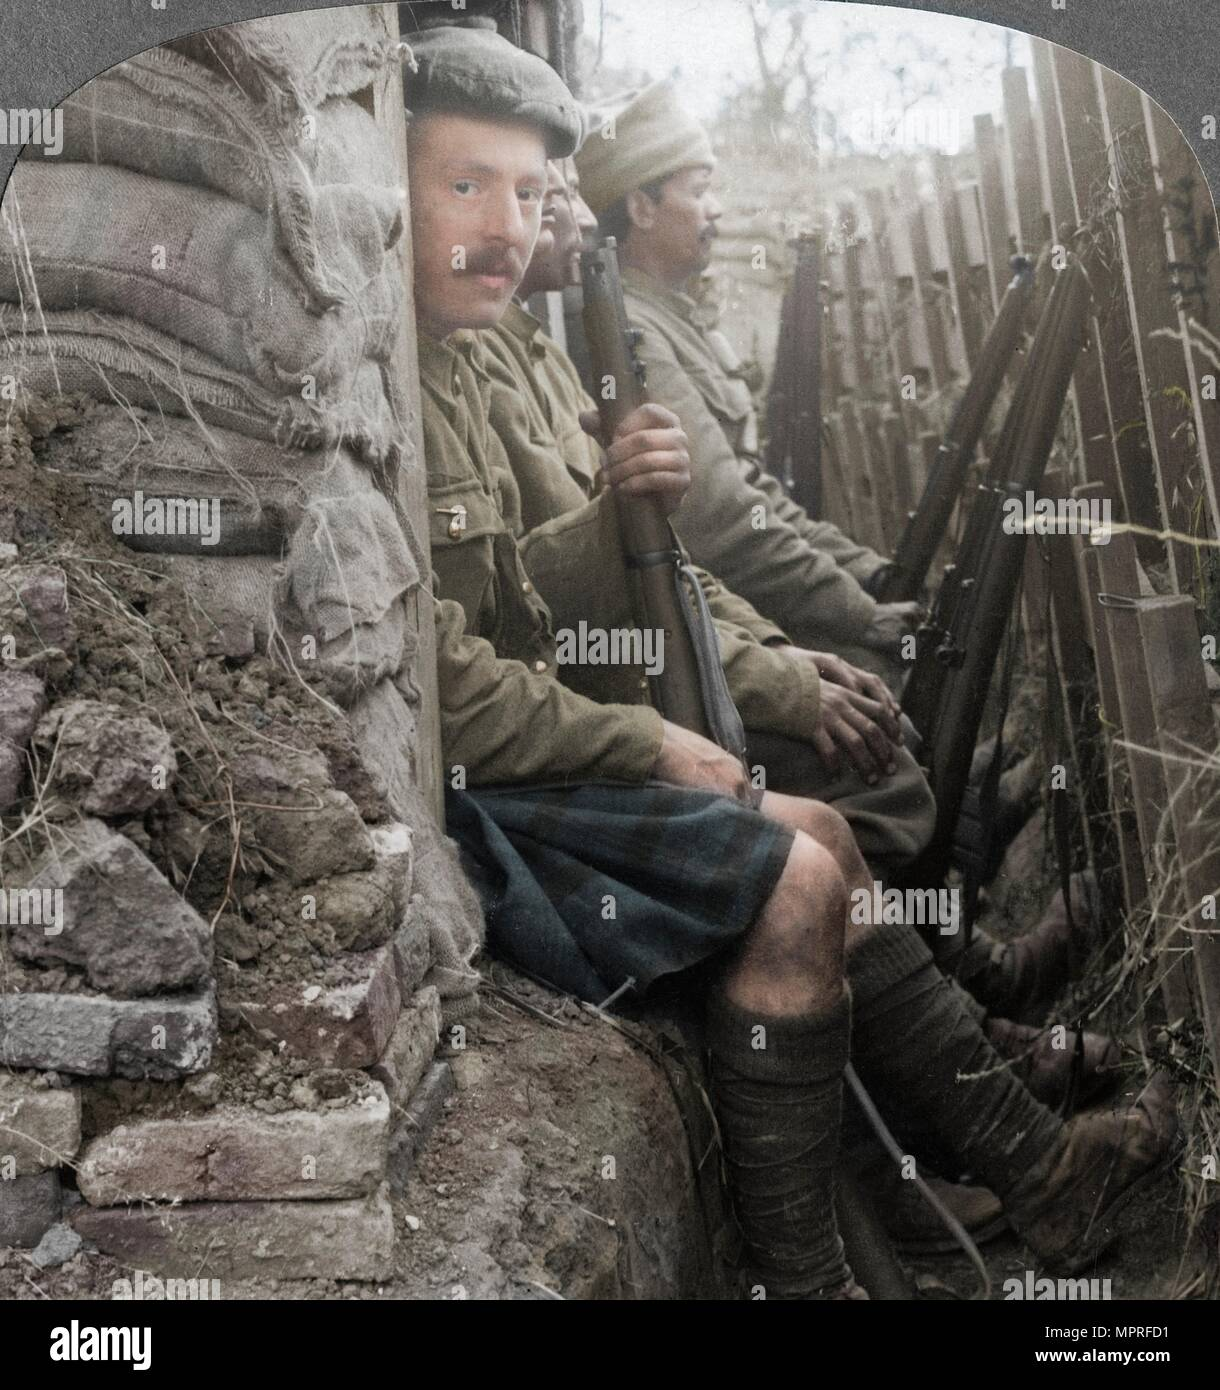 Indian soldiers in the trenches, World War I, 1914-1918. Artist: Realistic Travels Publishers. - Stock Image